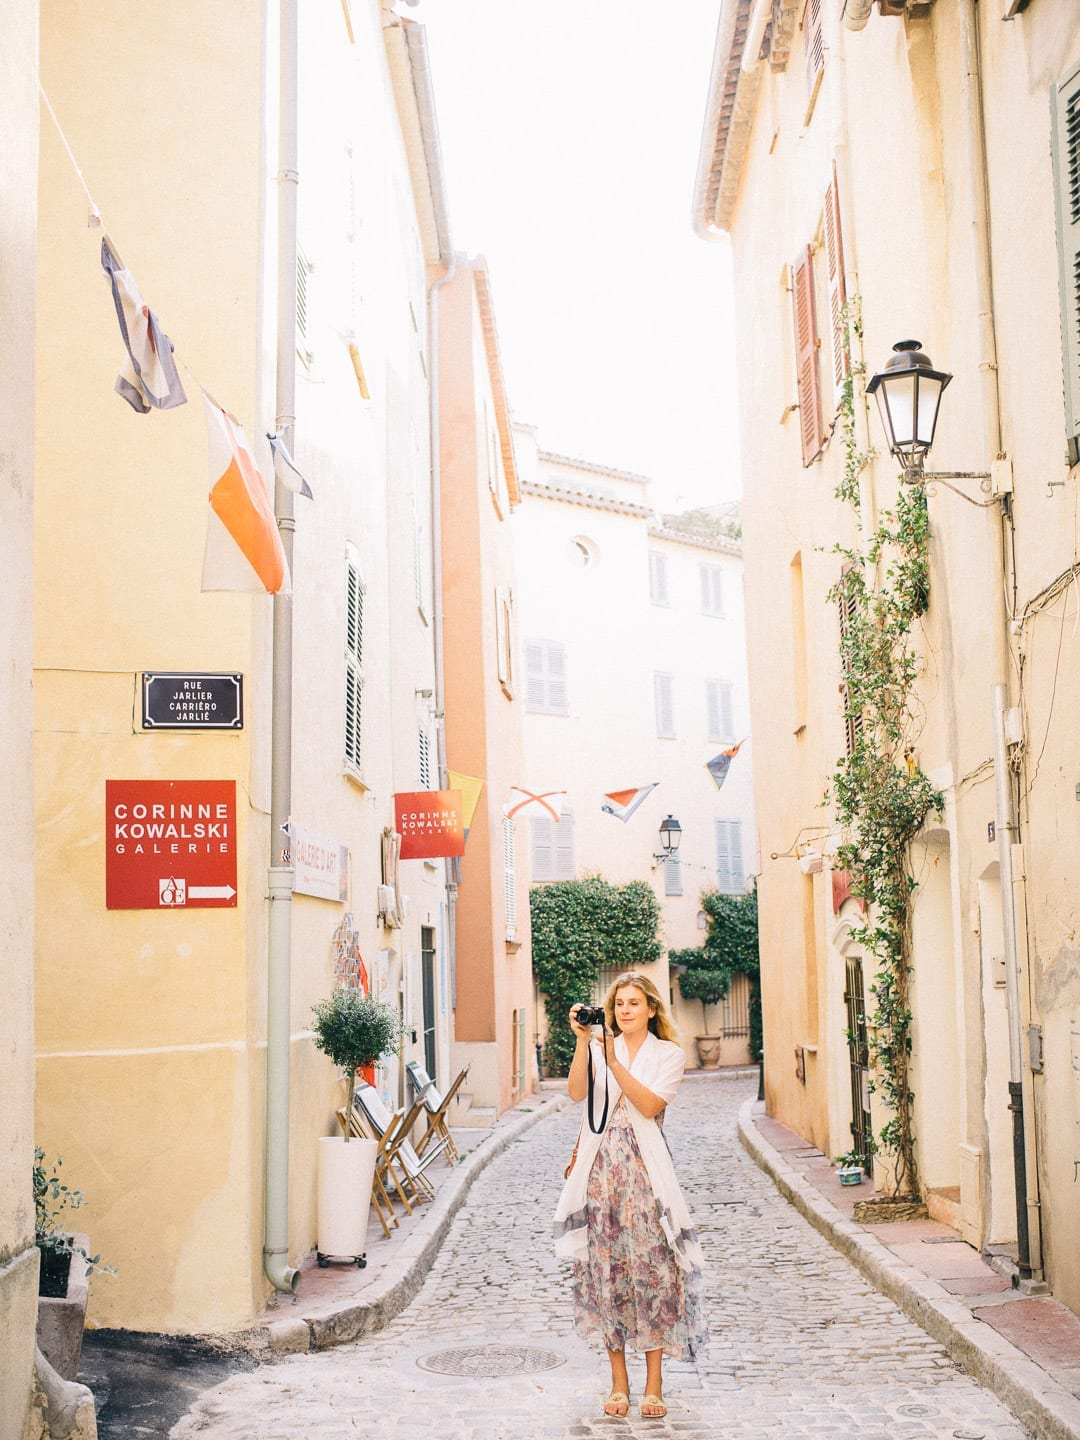 All Our Best Photography Tips & Tricks - Woman photographing historic buildings in France on a cobblestone road